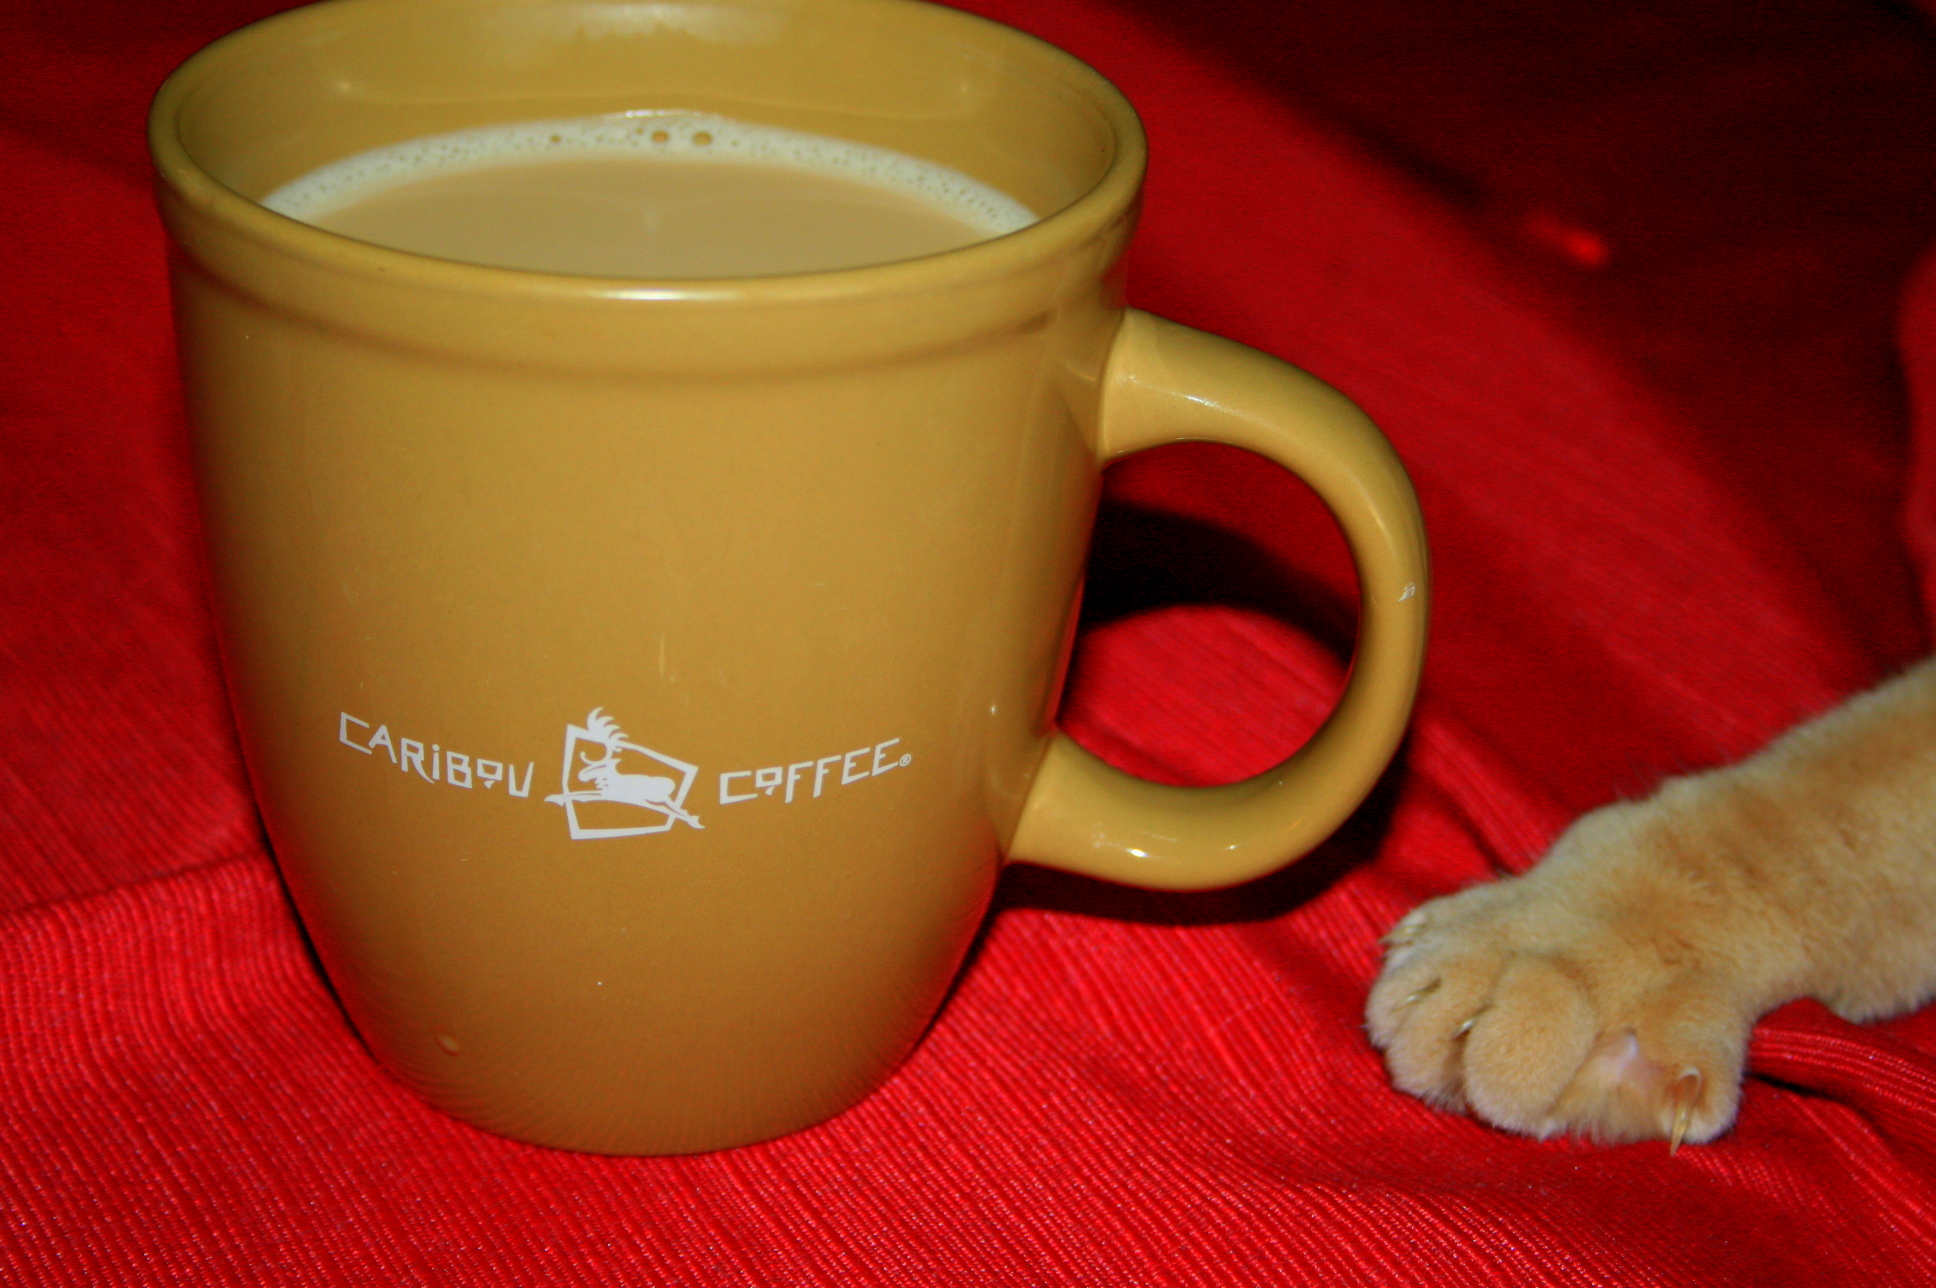 Aslan wants coffee too!